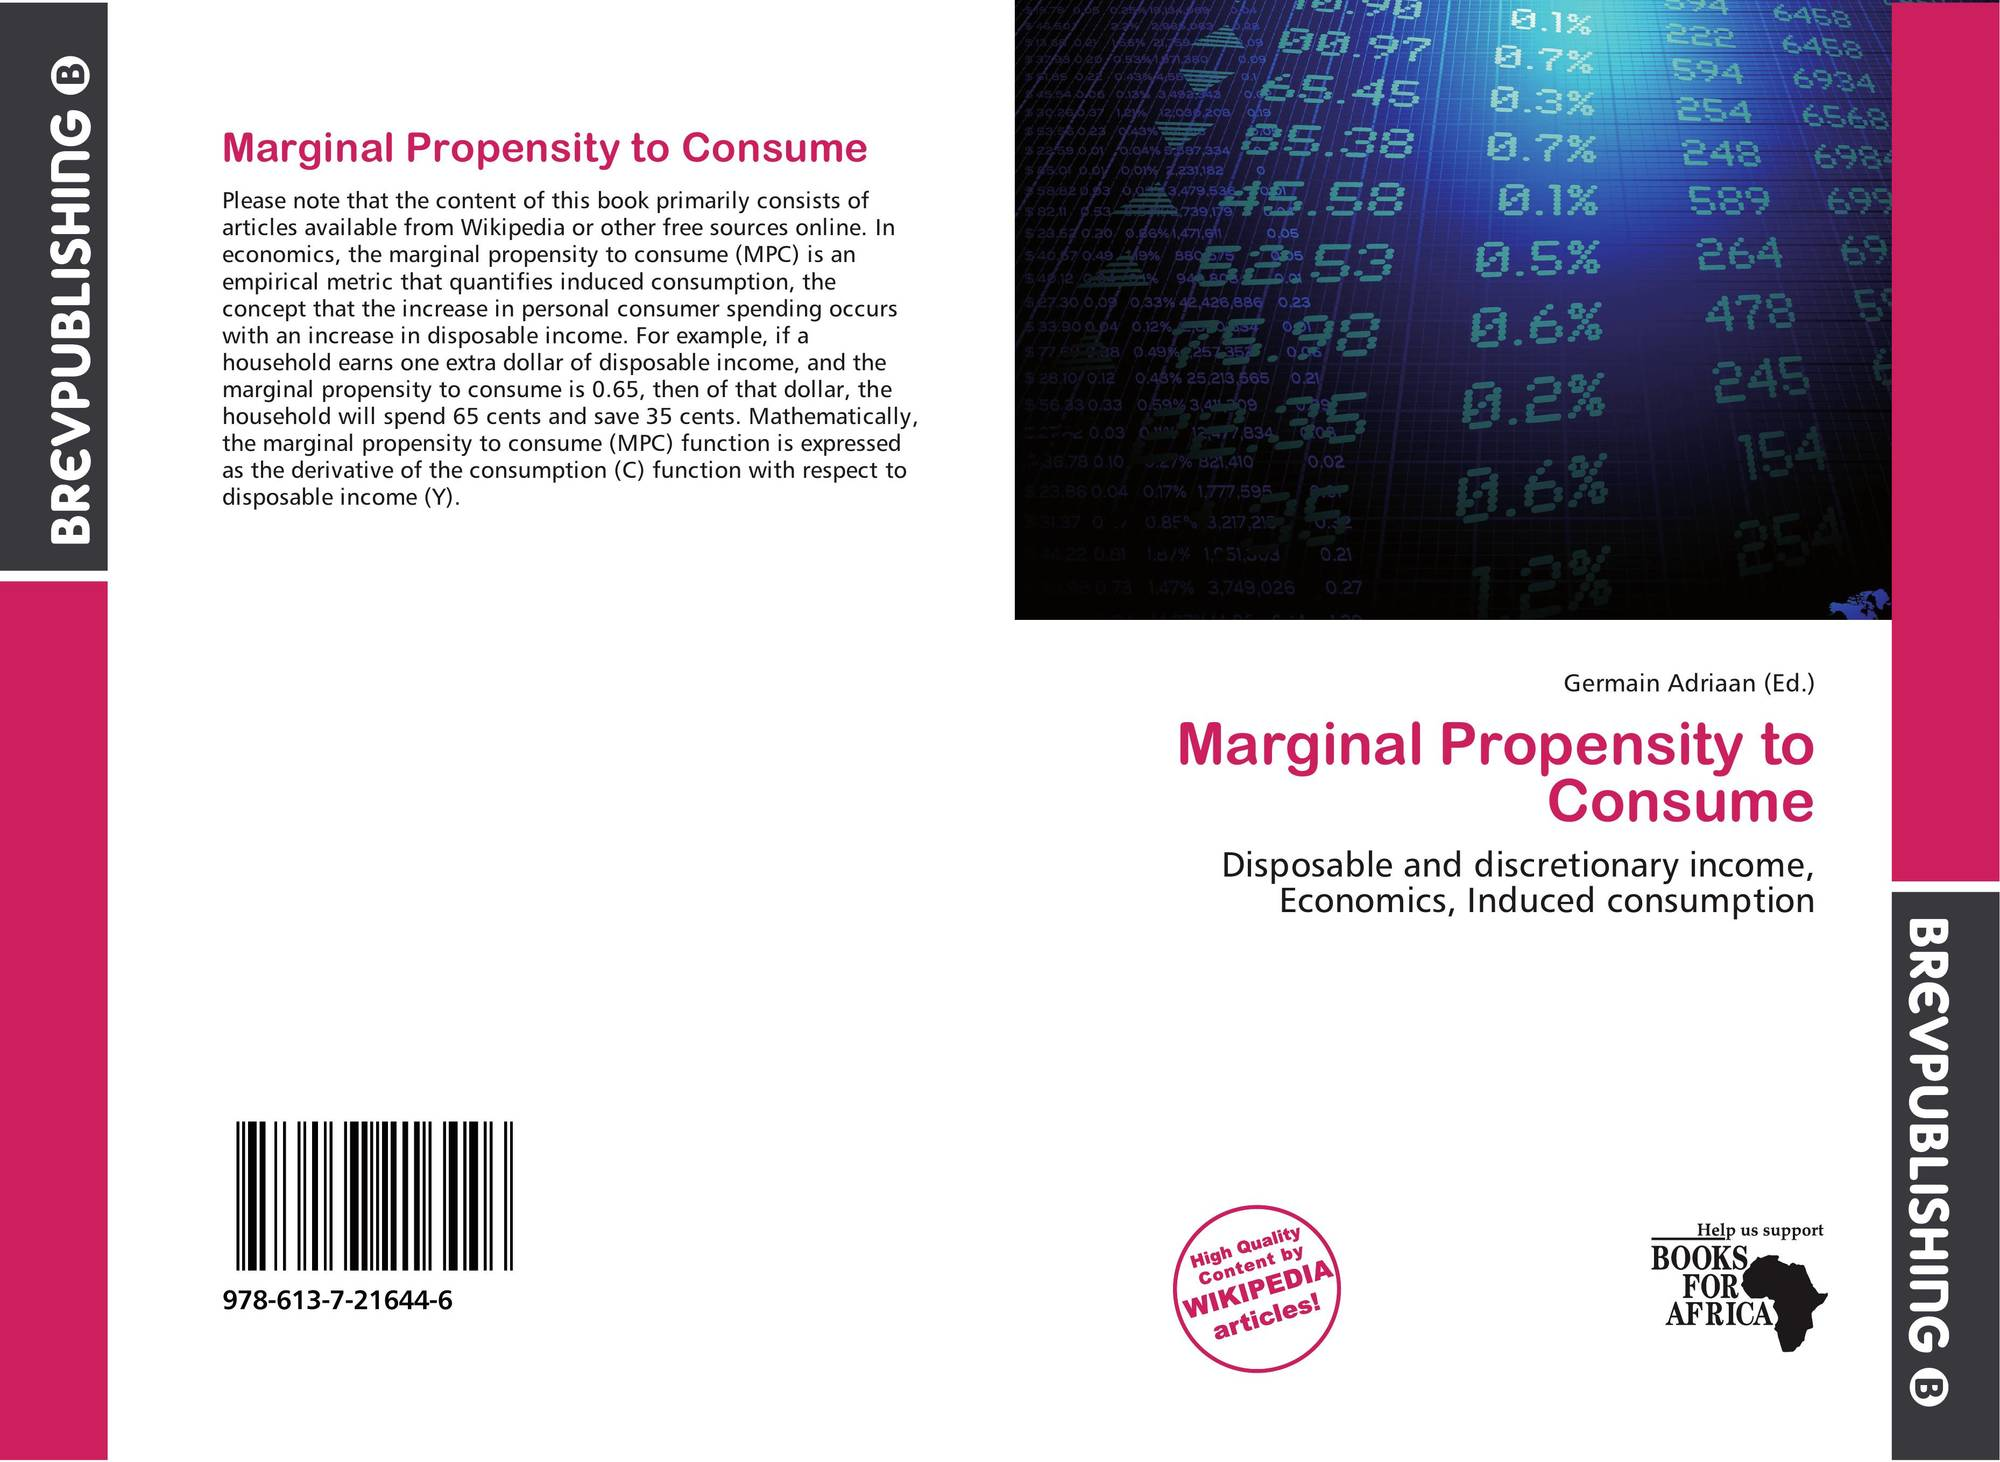 marginal propensity of consume in china